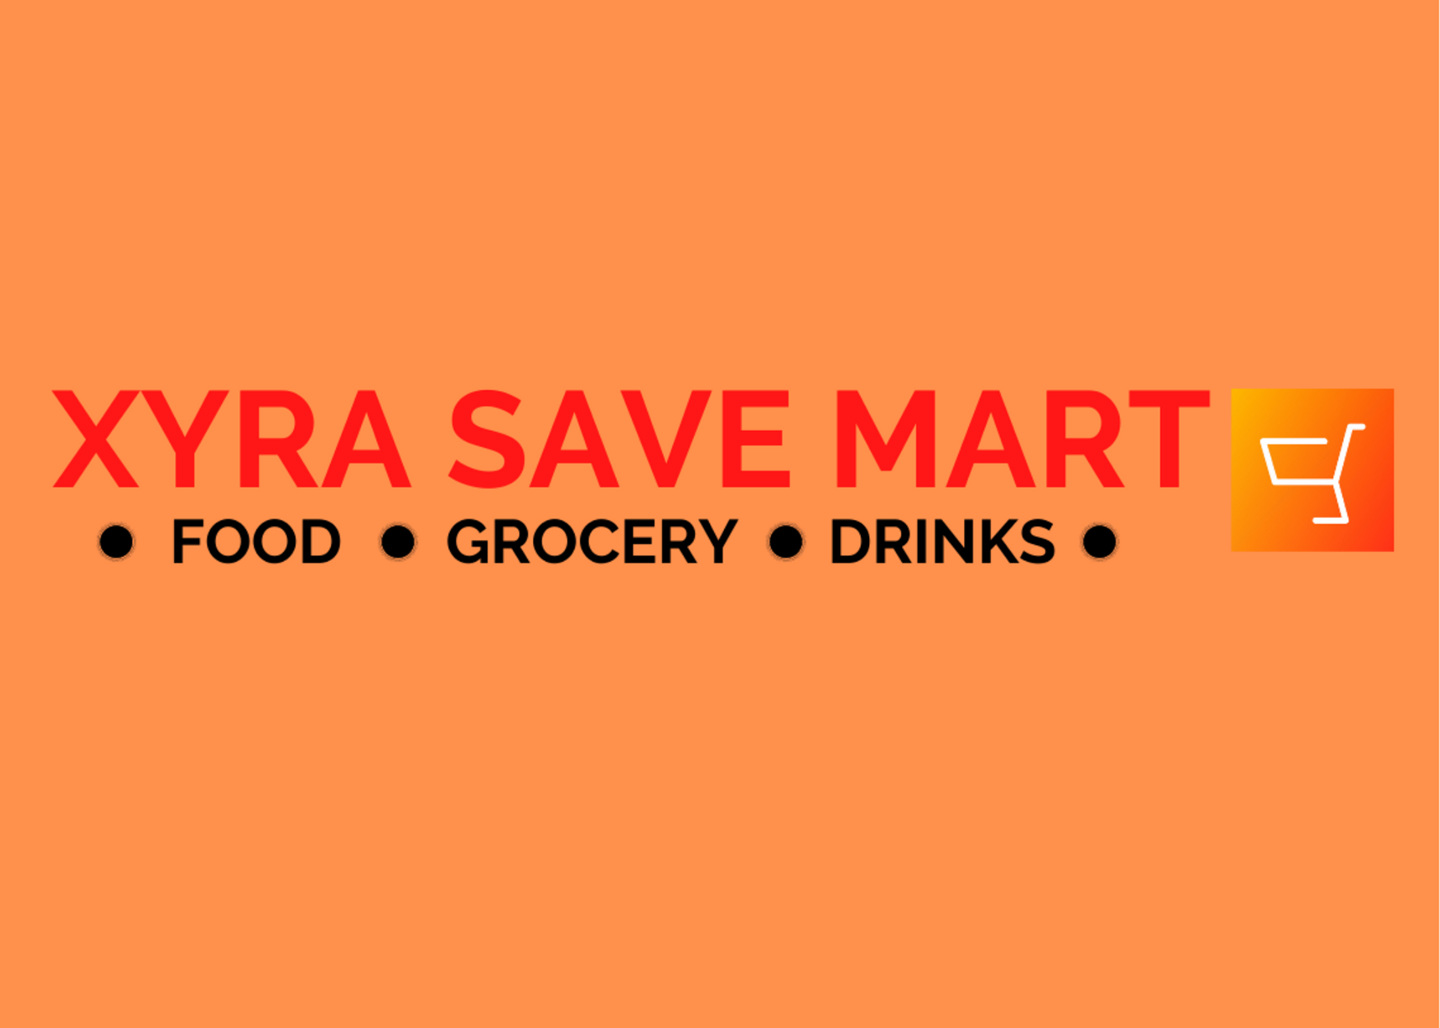 Coming soon - an online store for XYRA SAVE MART! Stay Tune.